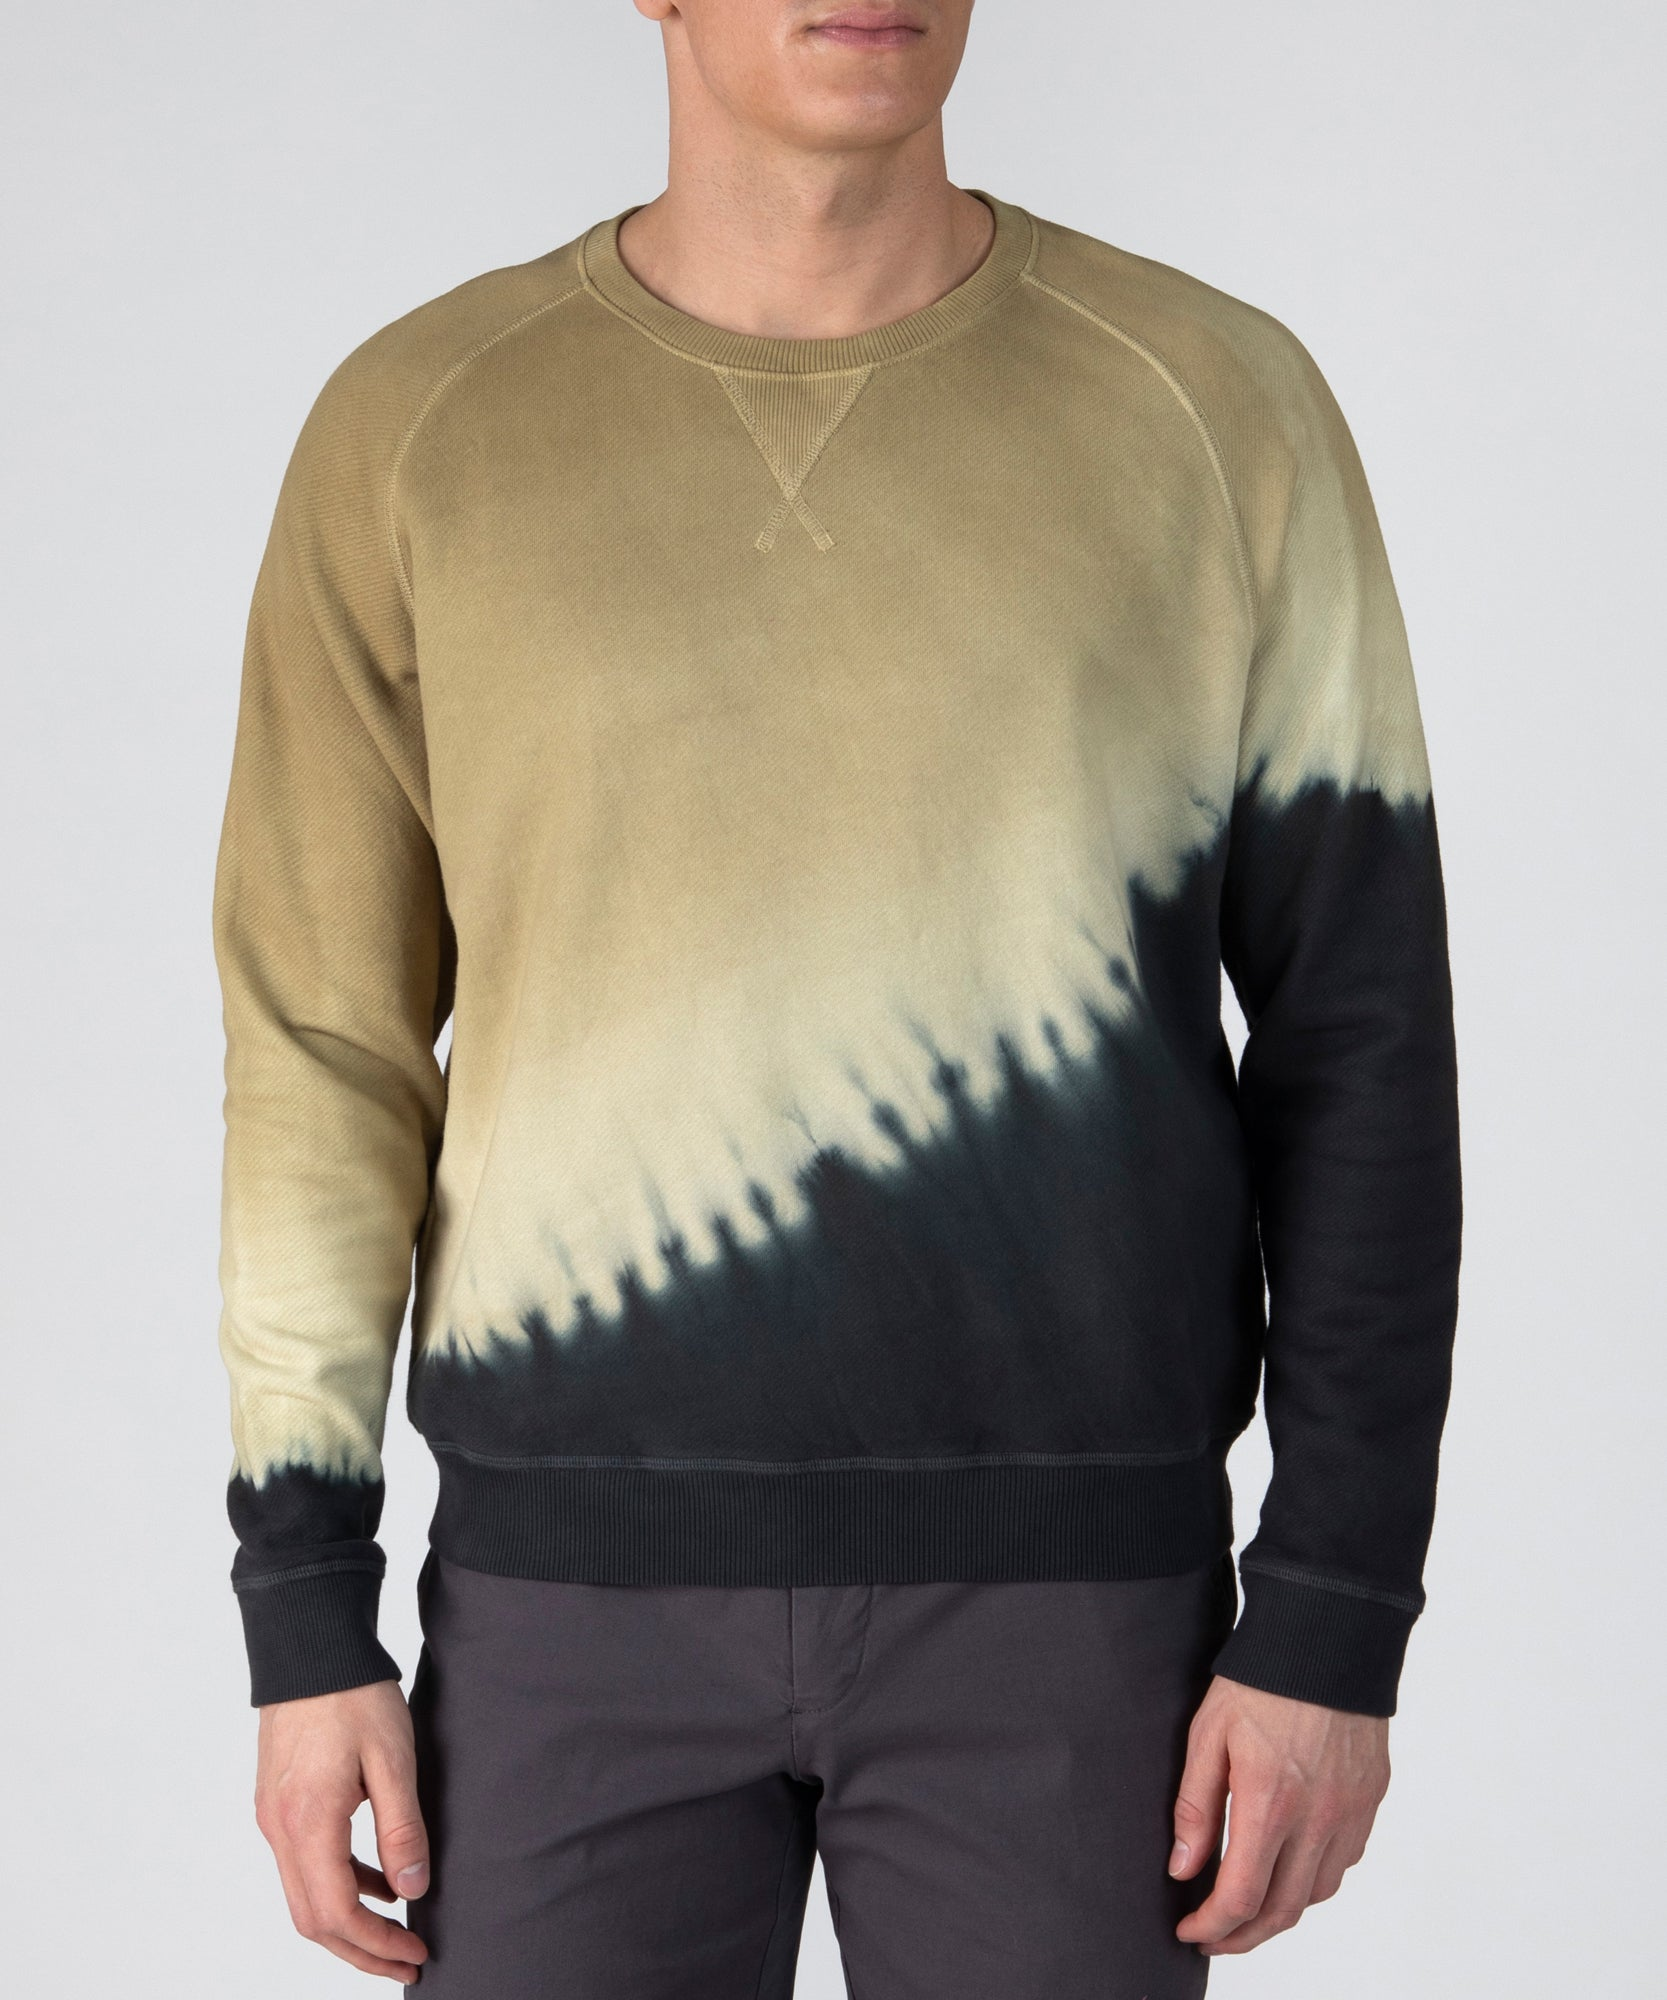 Chartreuse/ Black French Terry Diagonal Dip Dye Sweatshirt - Men's Luxe Loungewear by ATM Anthony Thomas Melillo